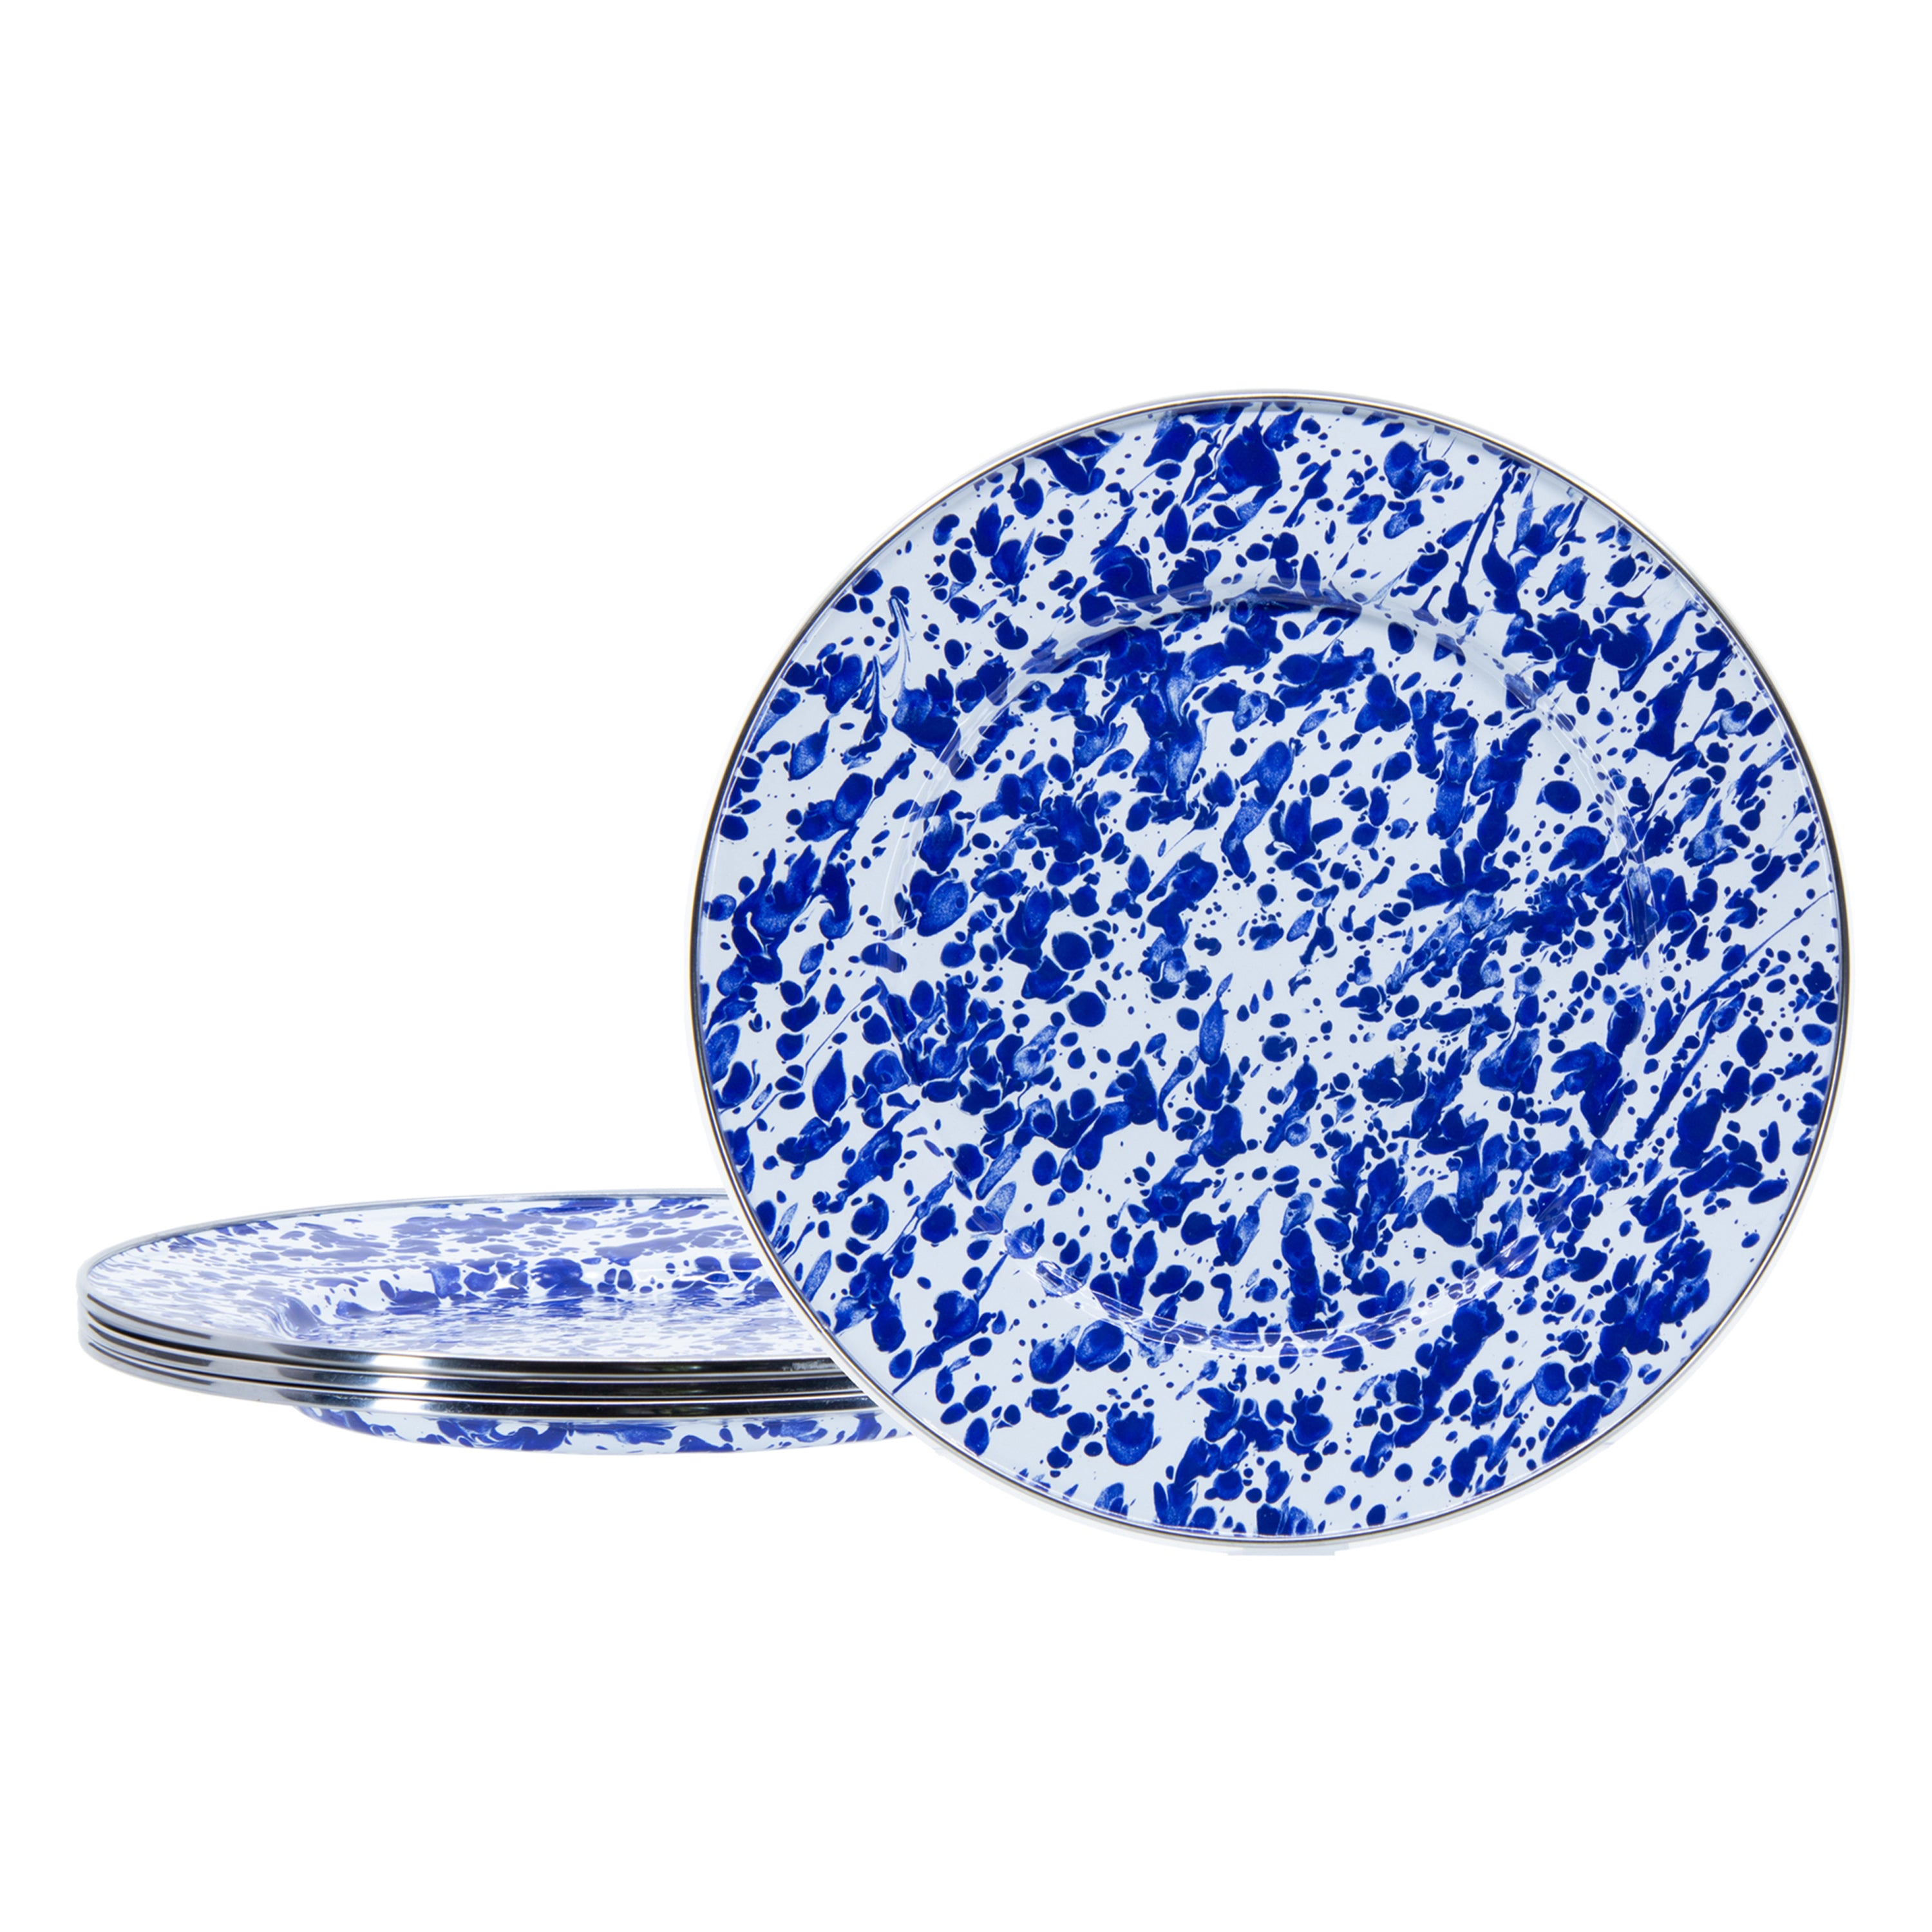 CB07S4 - Set of 4 Cobalt Swirl Dinner Plates Image 1